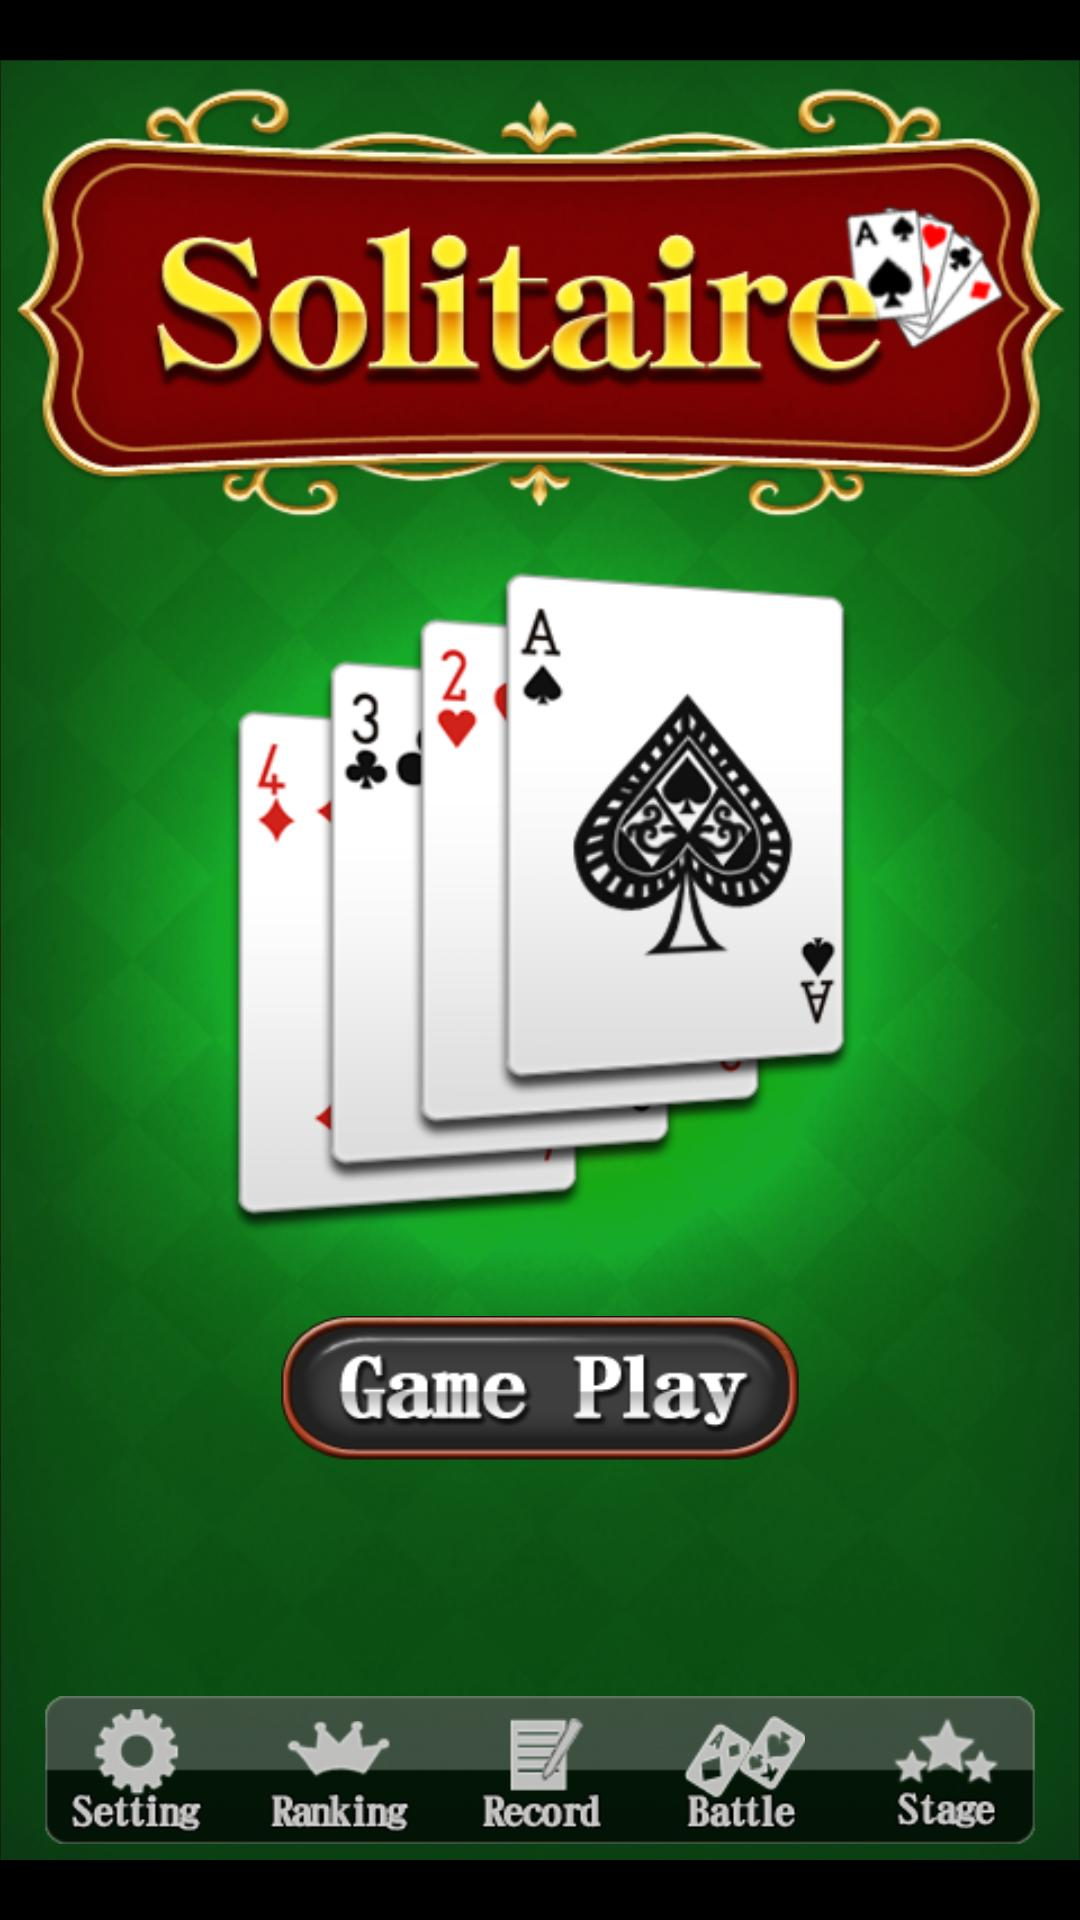 Solitaire 1.6.15 Screenshot 6